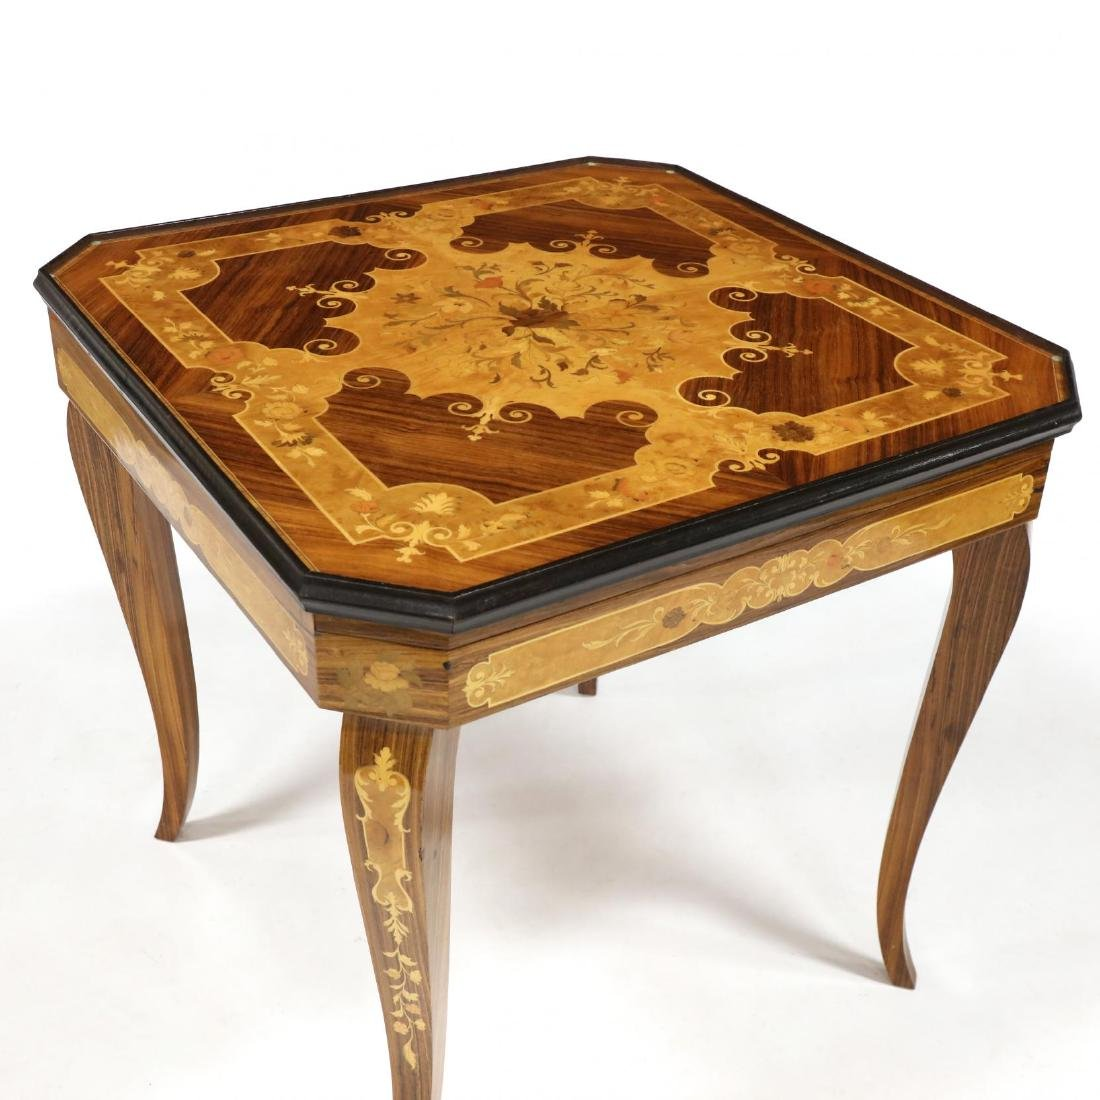 Italian Marquetry Inlaid Multi-Games Table - 2